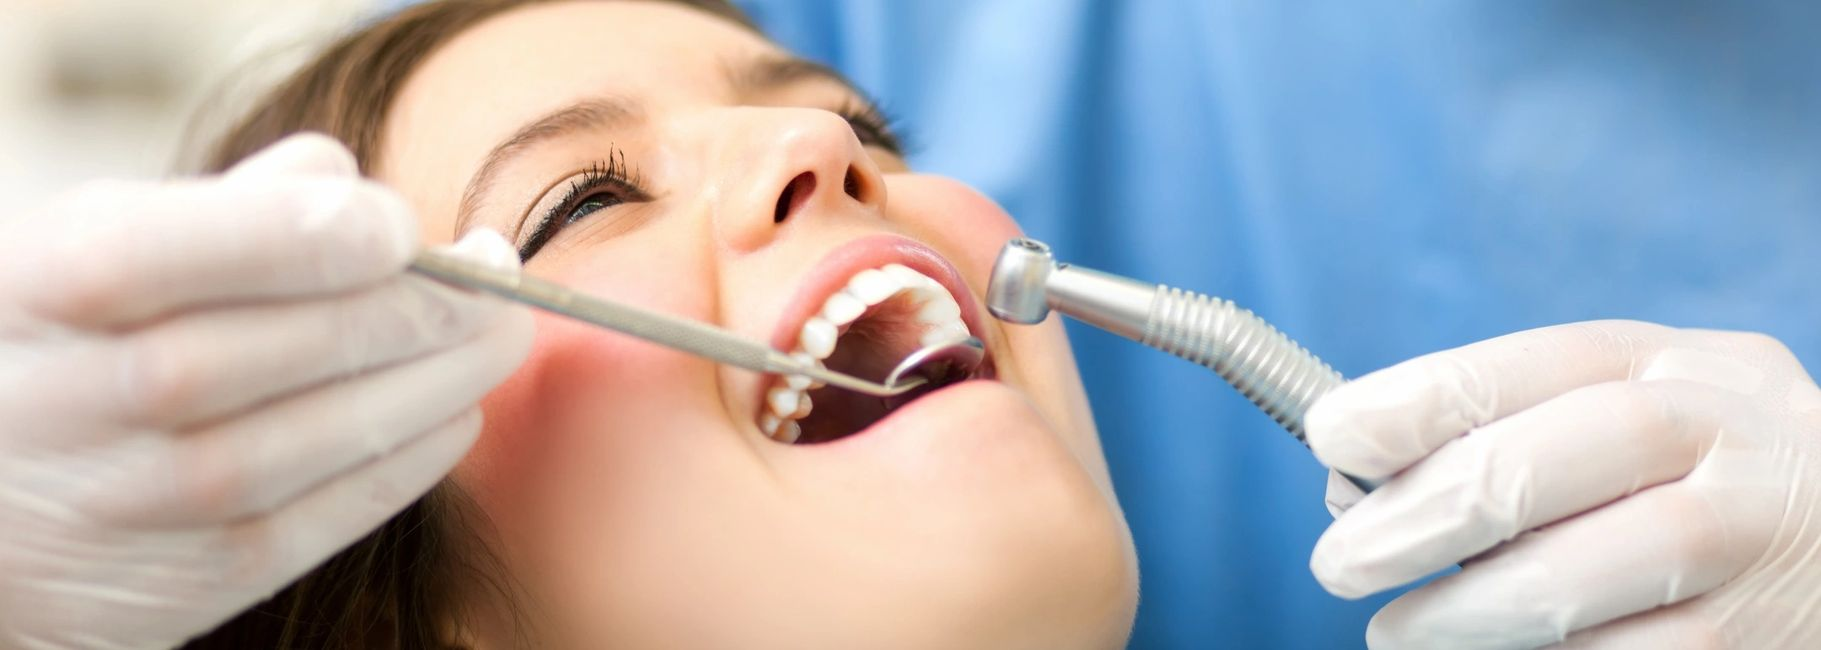 Discount Dental Plans make dental visits affordable